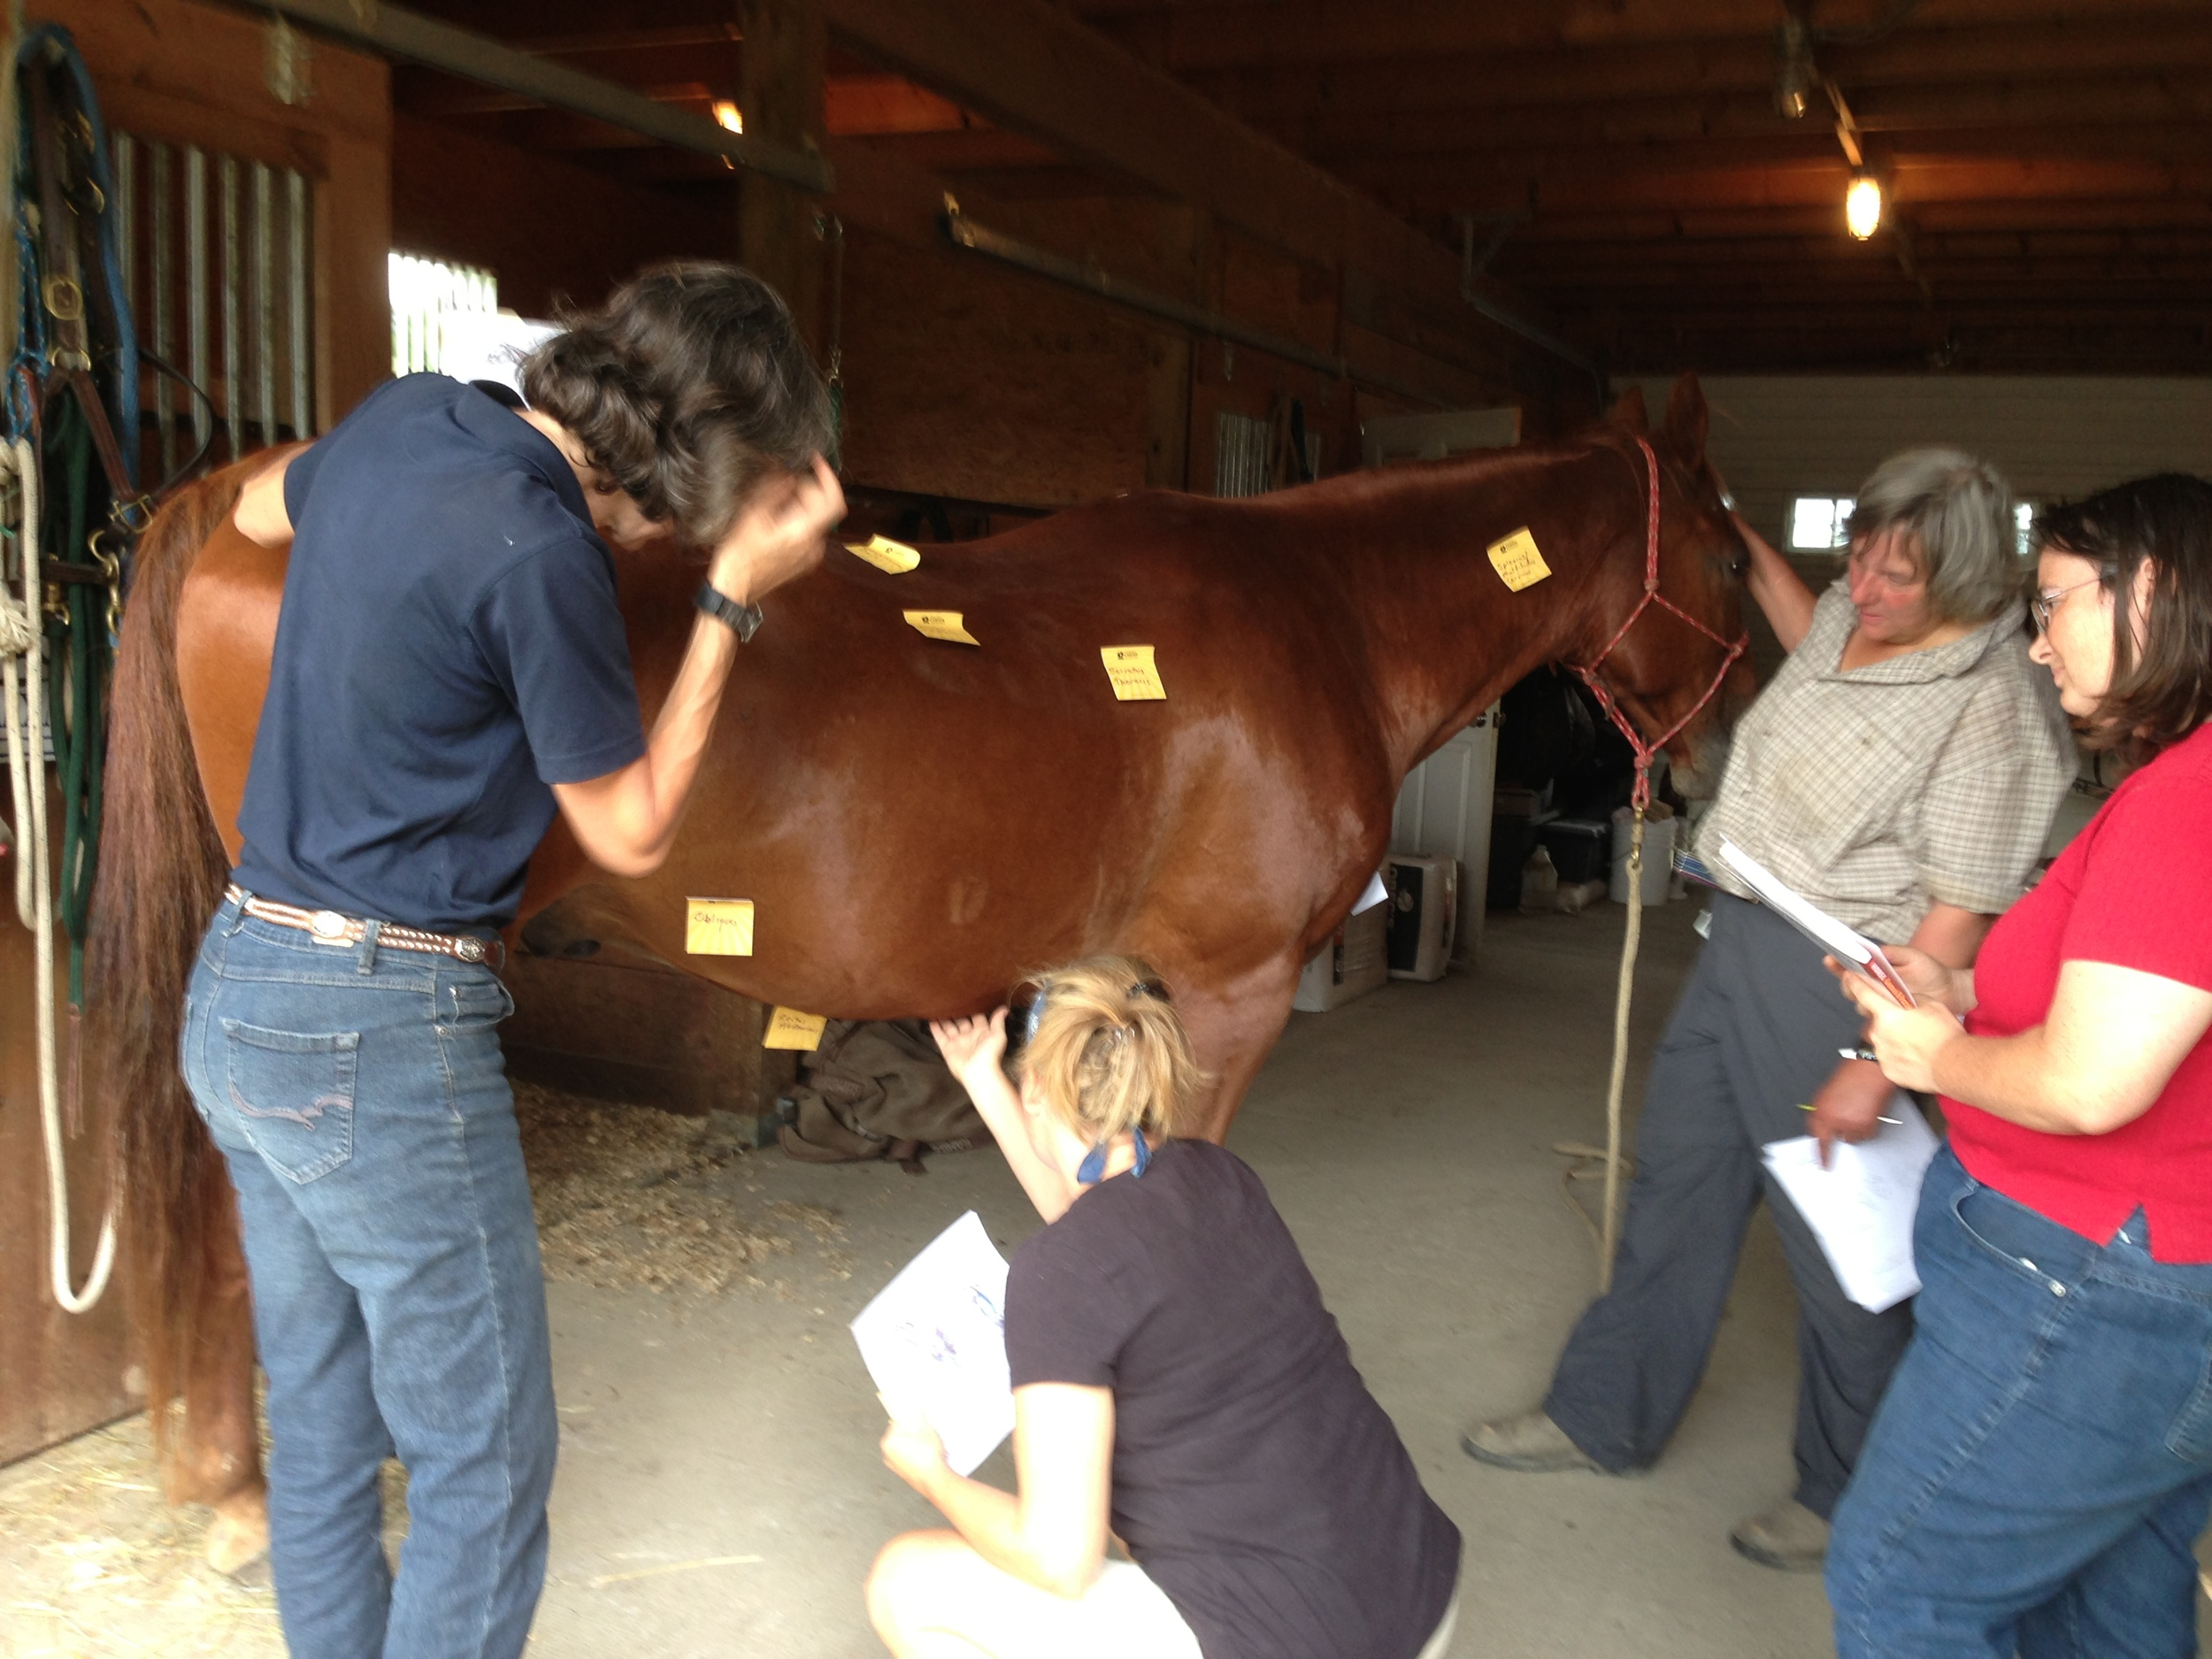 Students taking the day to learn more about horse anatomy - Find a community of follow horse people committed to constantly bettering themselves for the well being of the horses in their lives.